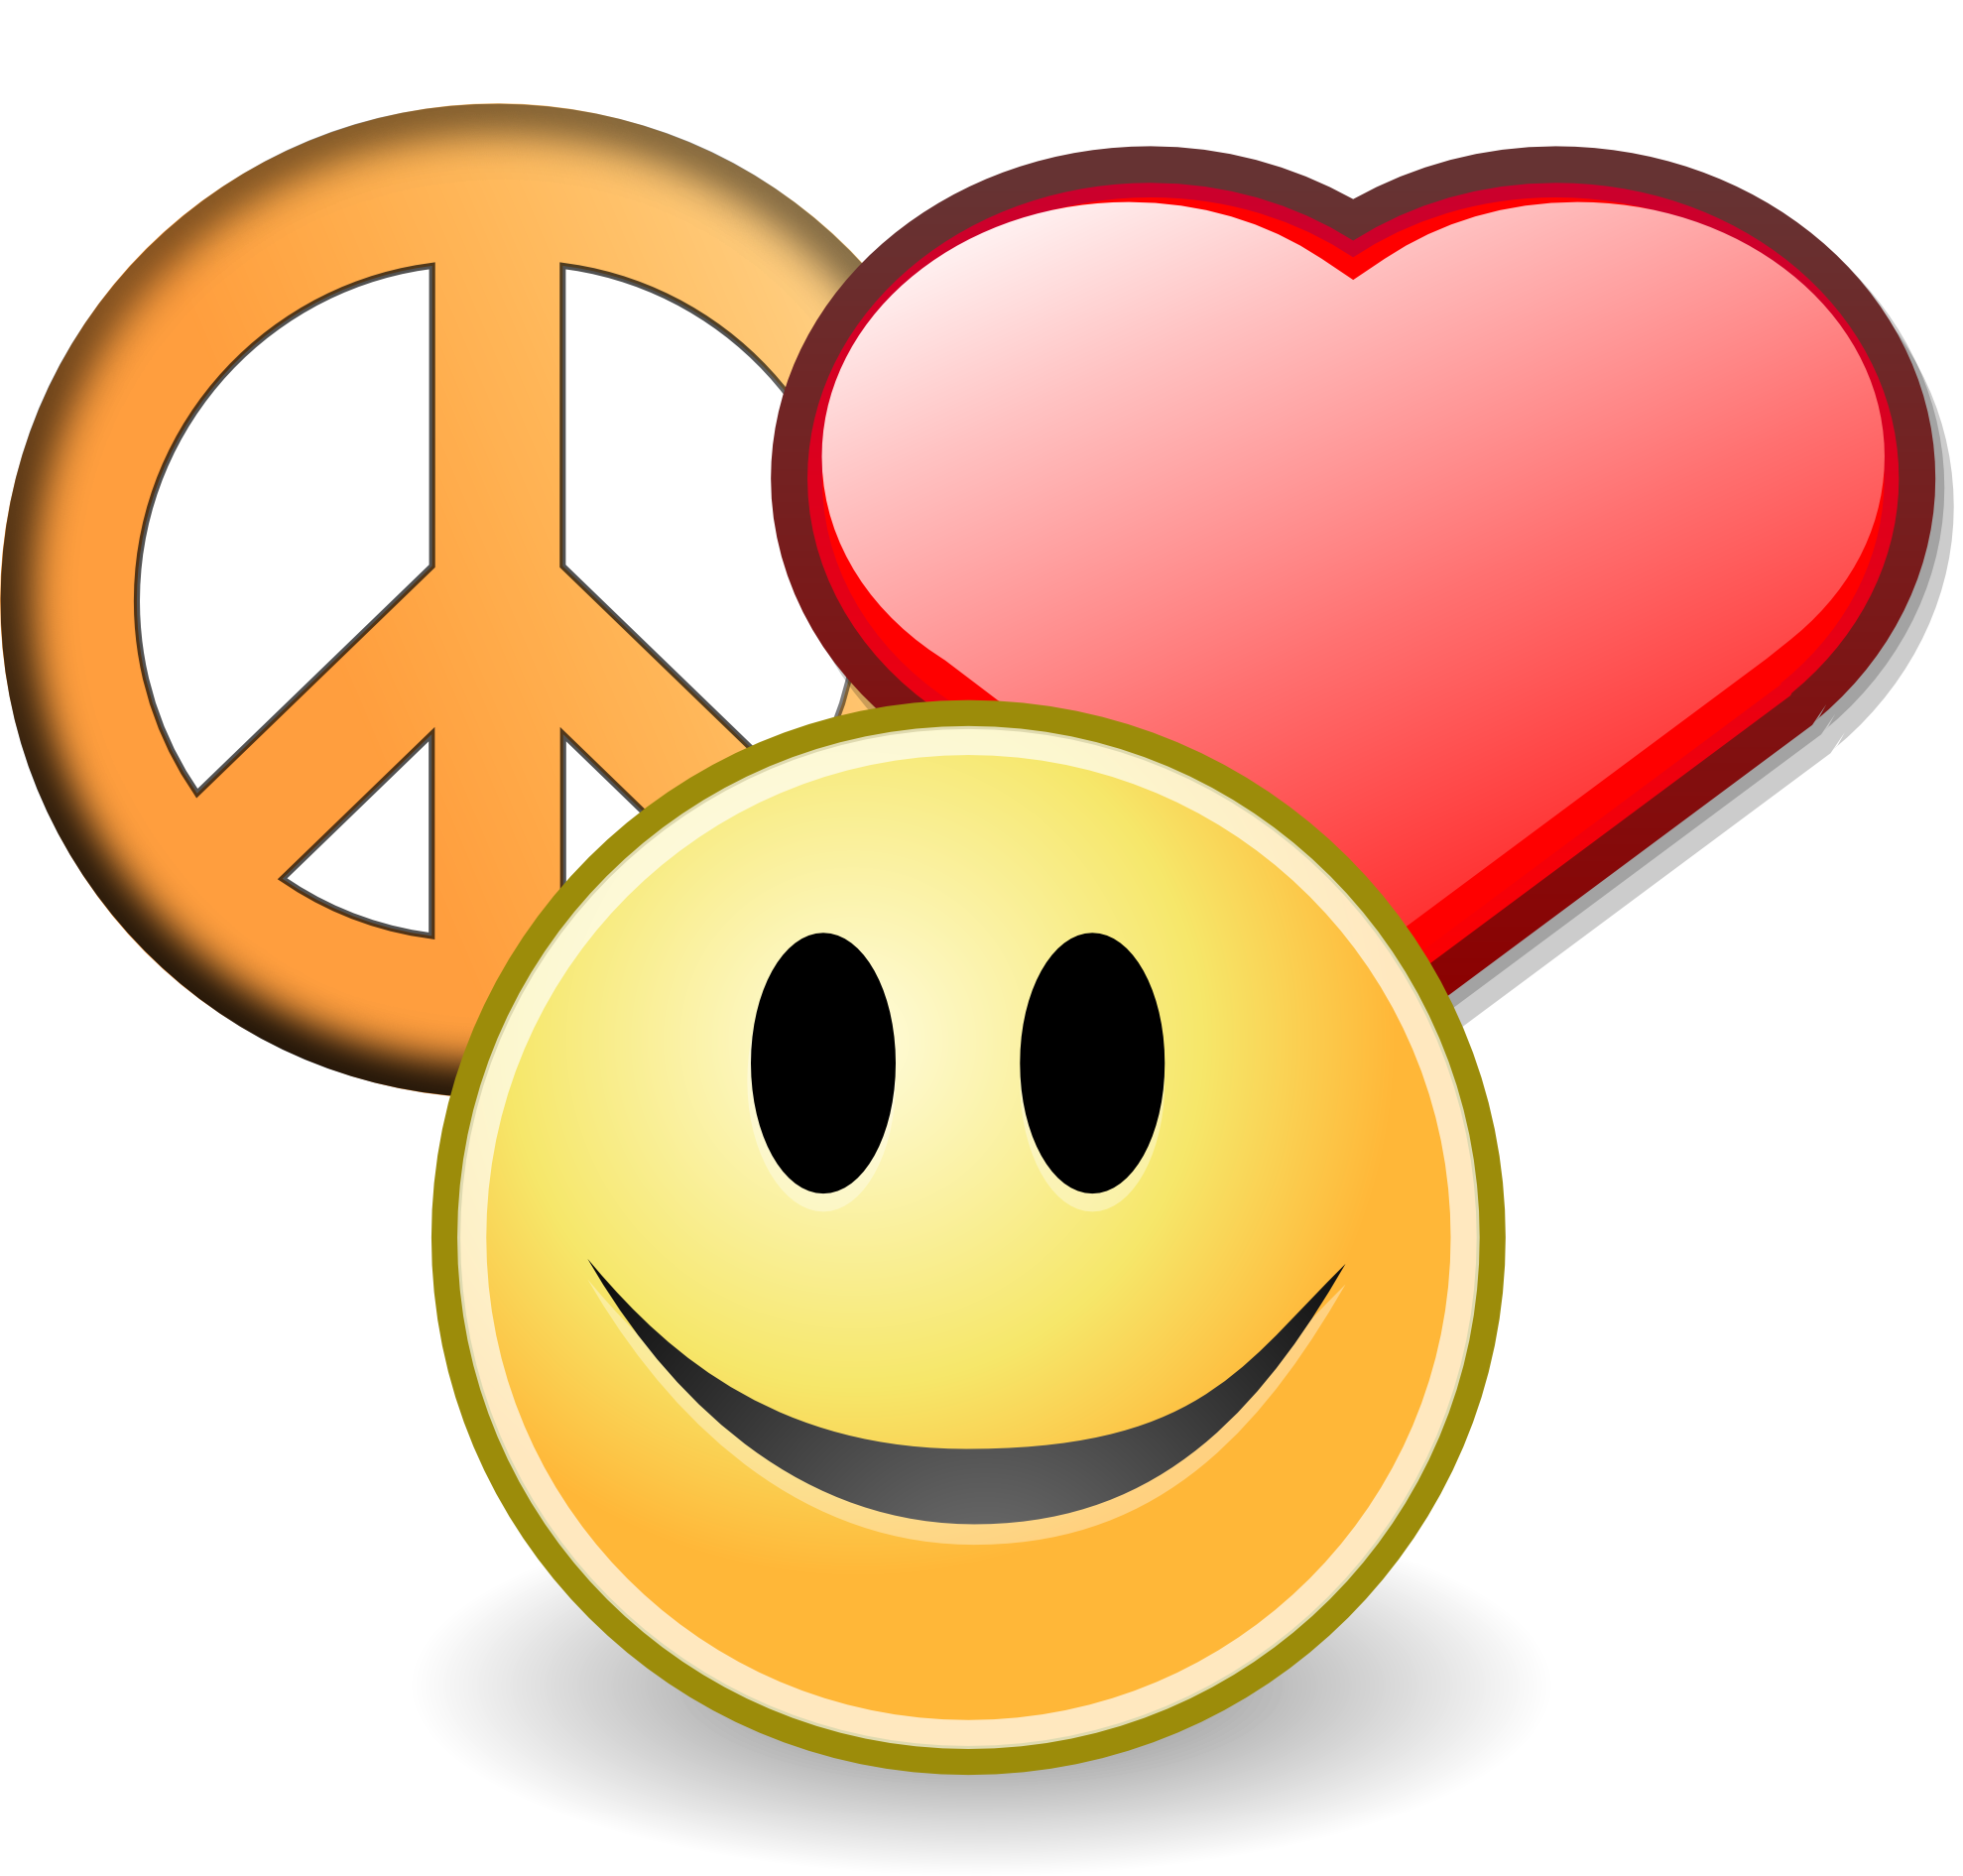 clip art free At getdrawings com free. Clipart kindness